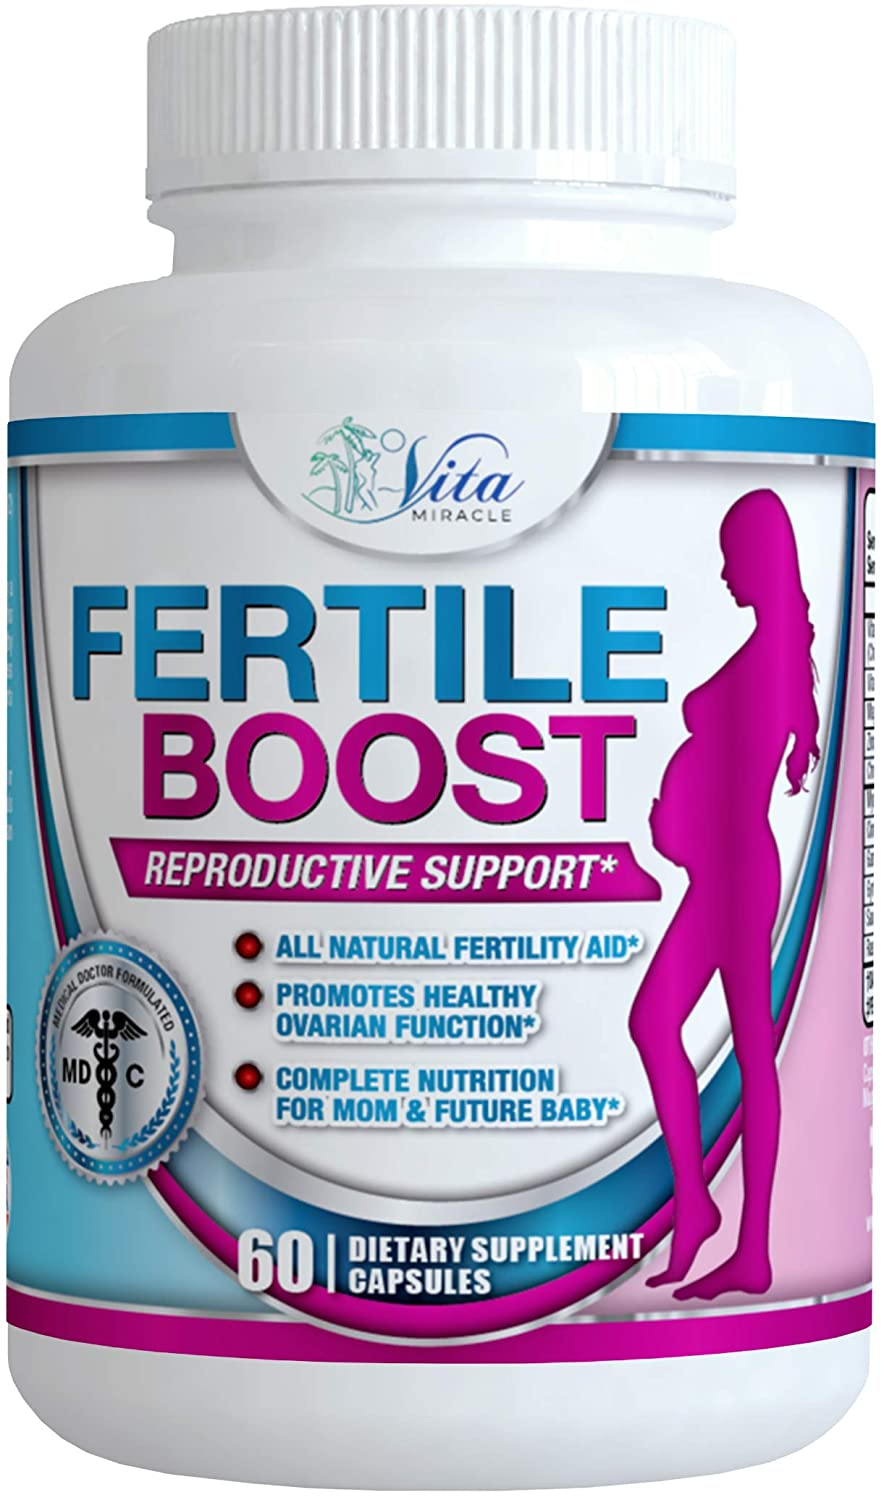 Dr Formulated Fertility Supplements for Women - with Myo Inositol Pre Pregnancy Fertility Pills PCOS Supplement Aid Ovulation and Regulate Cycle to Help Conception and Get Pregnant Fast